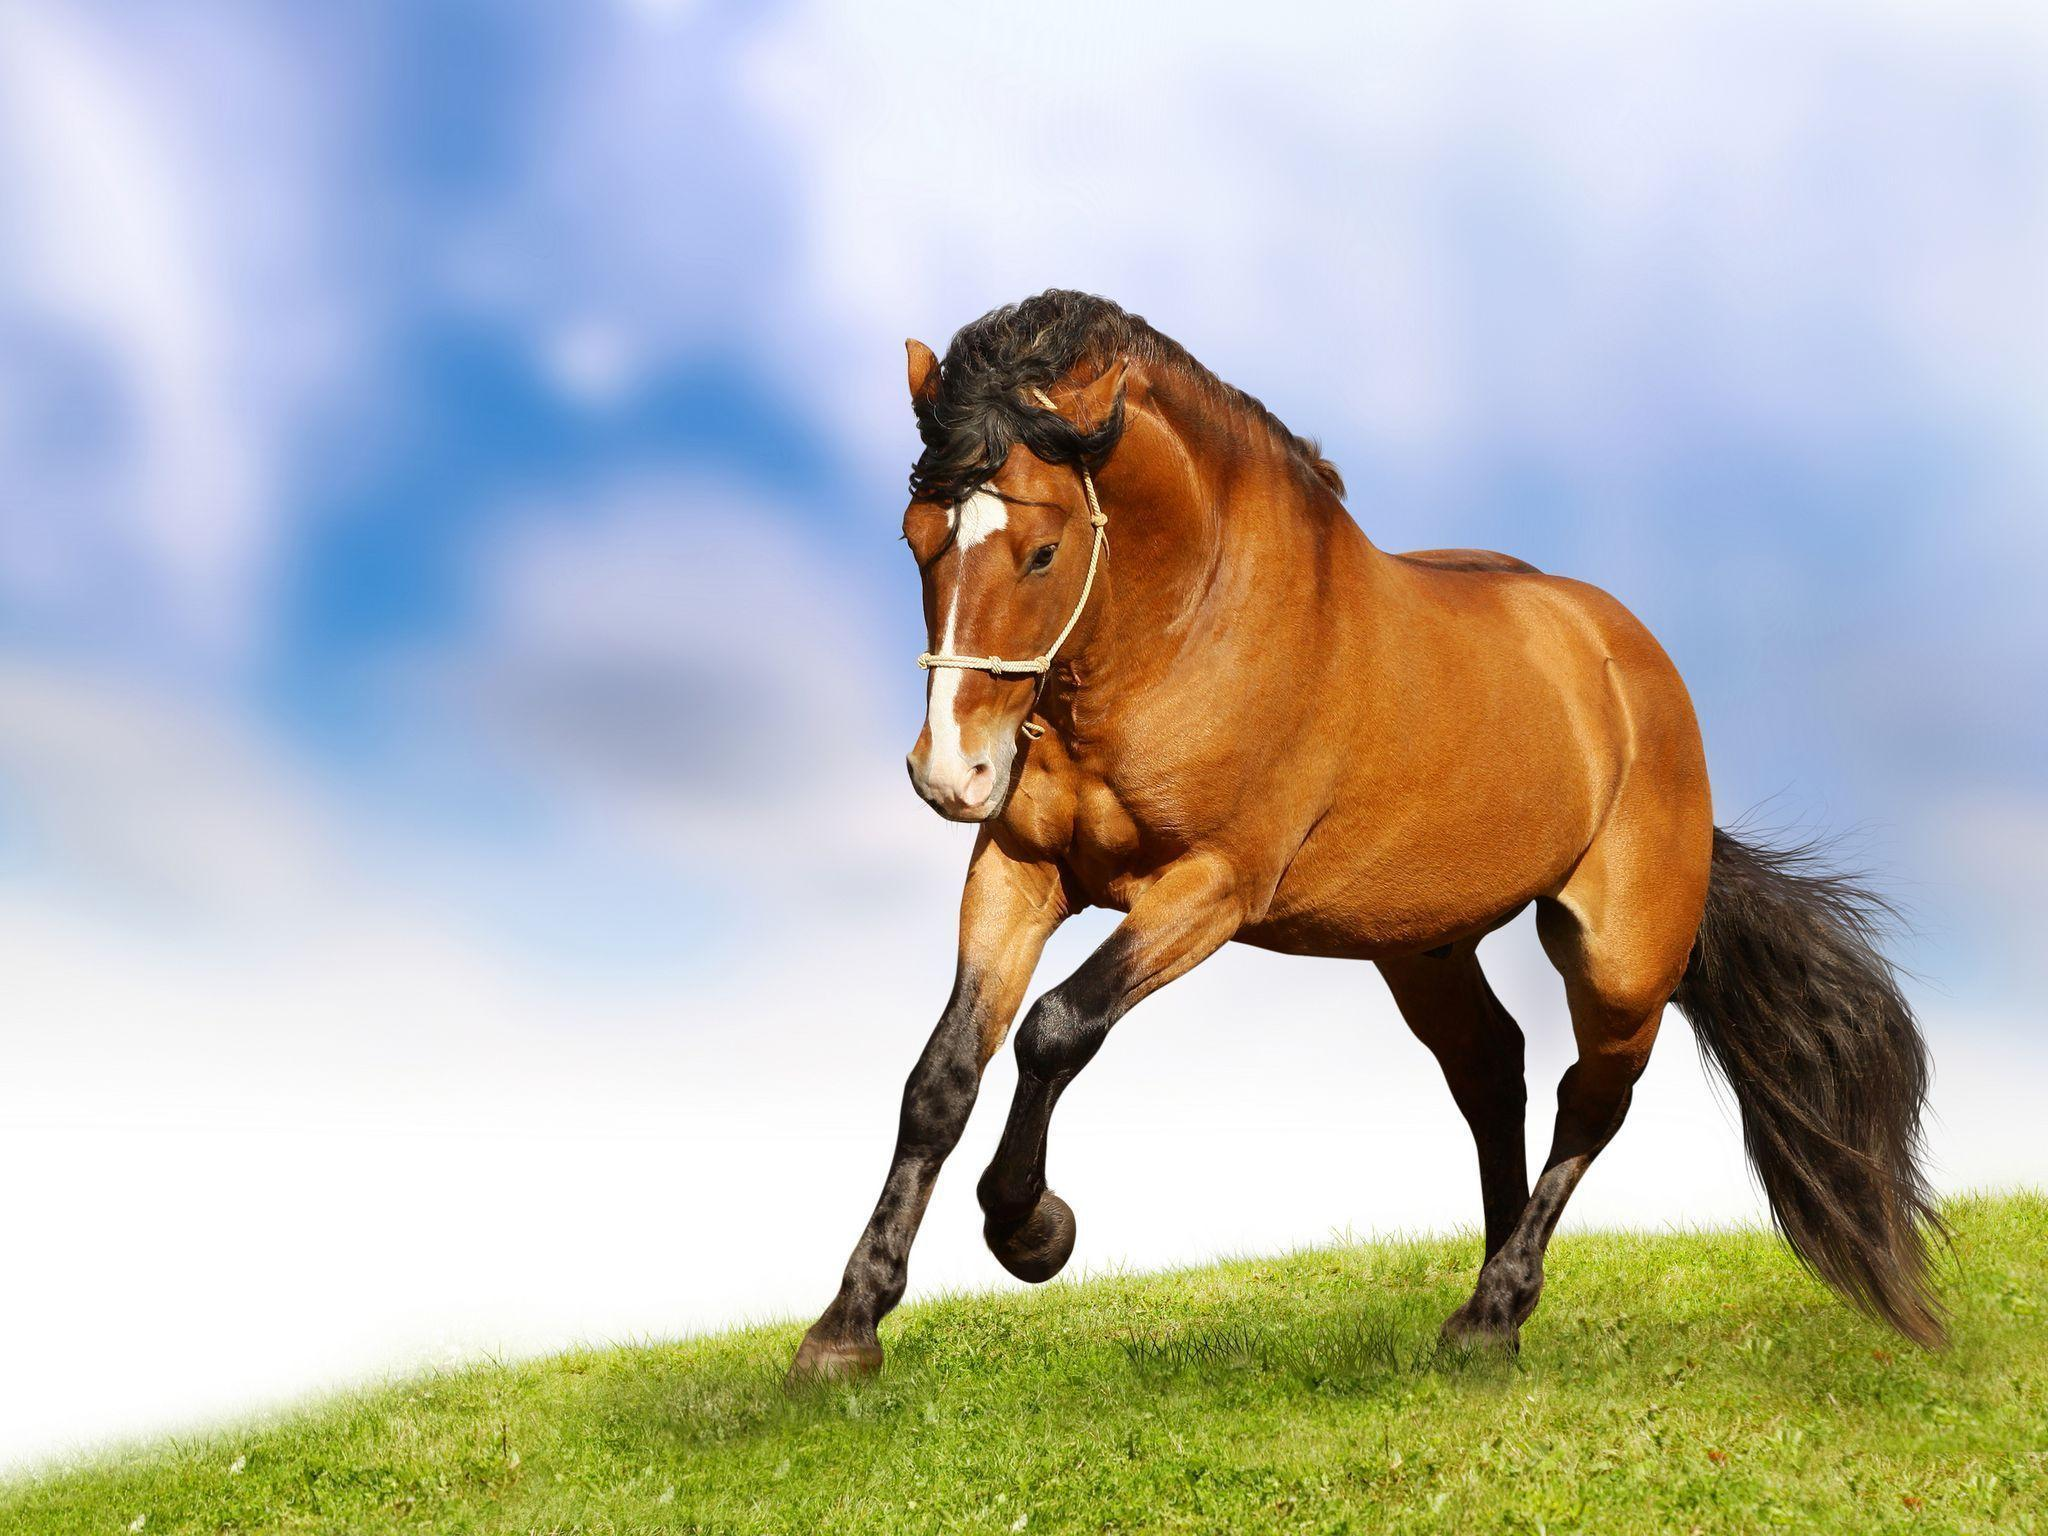 Horse Wallpaper for Home - HD Wallpapers|WallForU.com